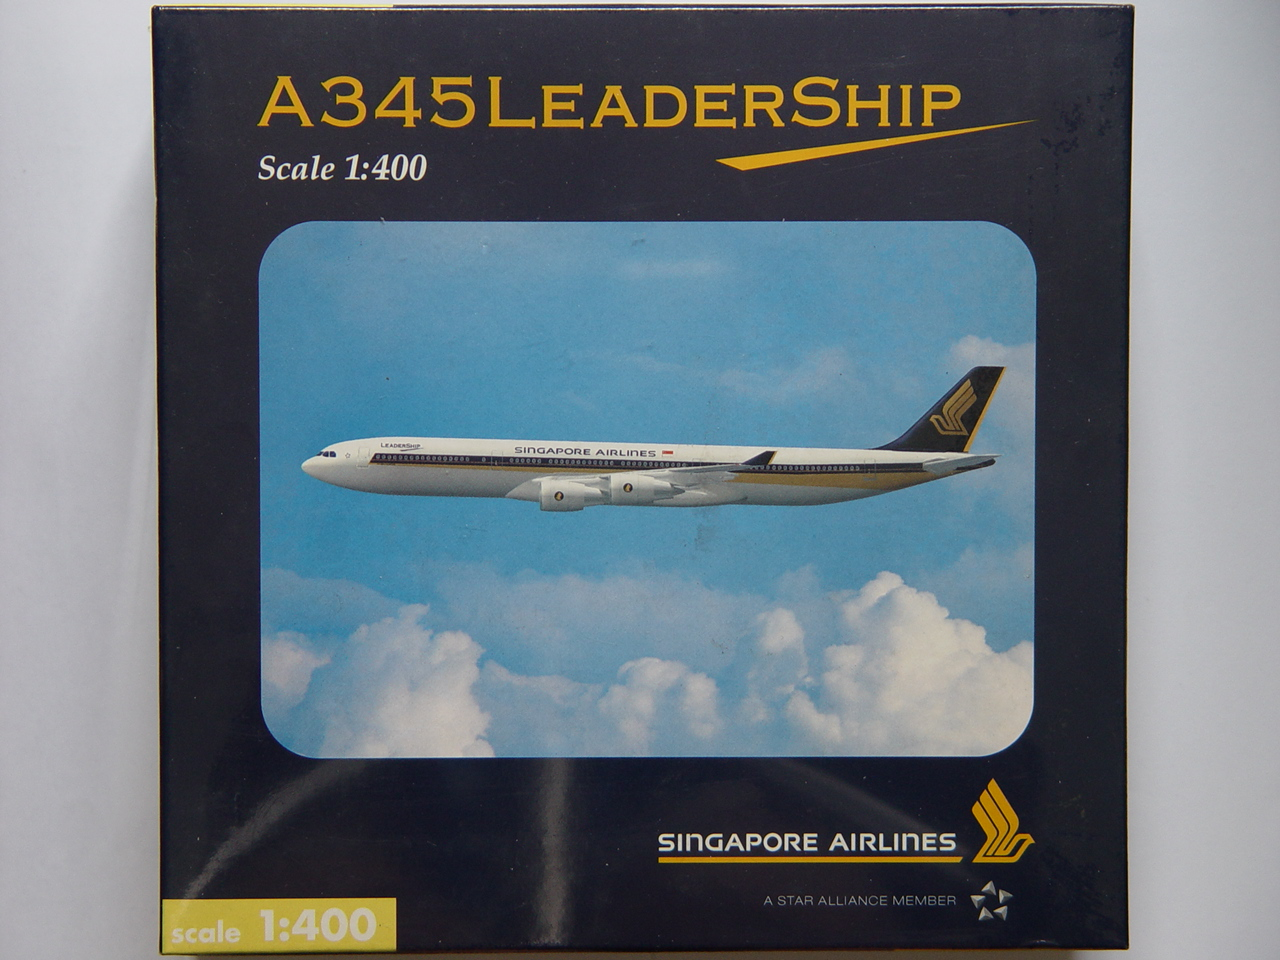 FOR SALE: Singapore Airlines A340-500 Leadership Aircraft Model